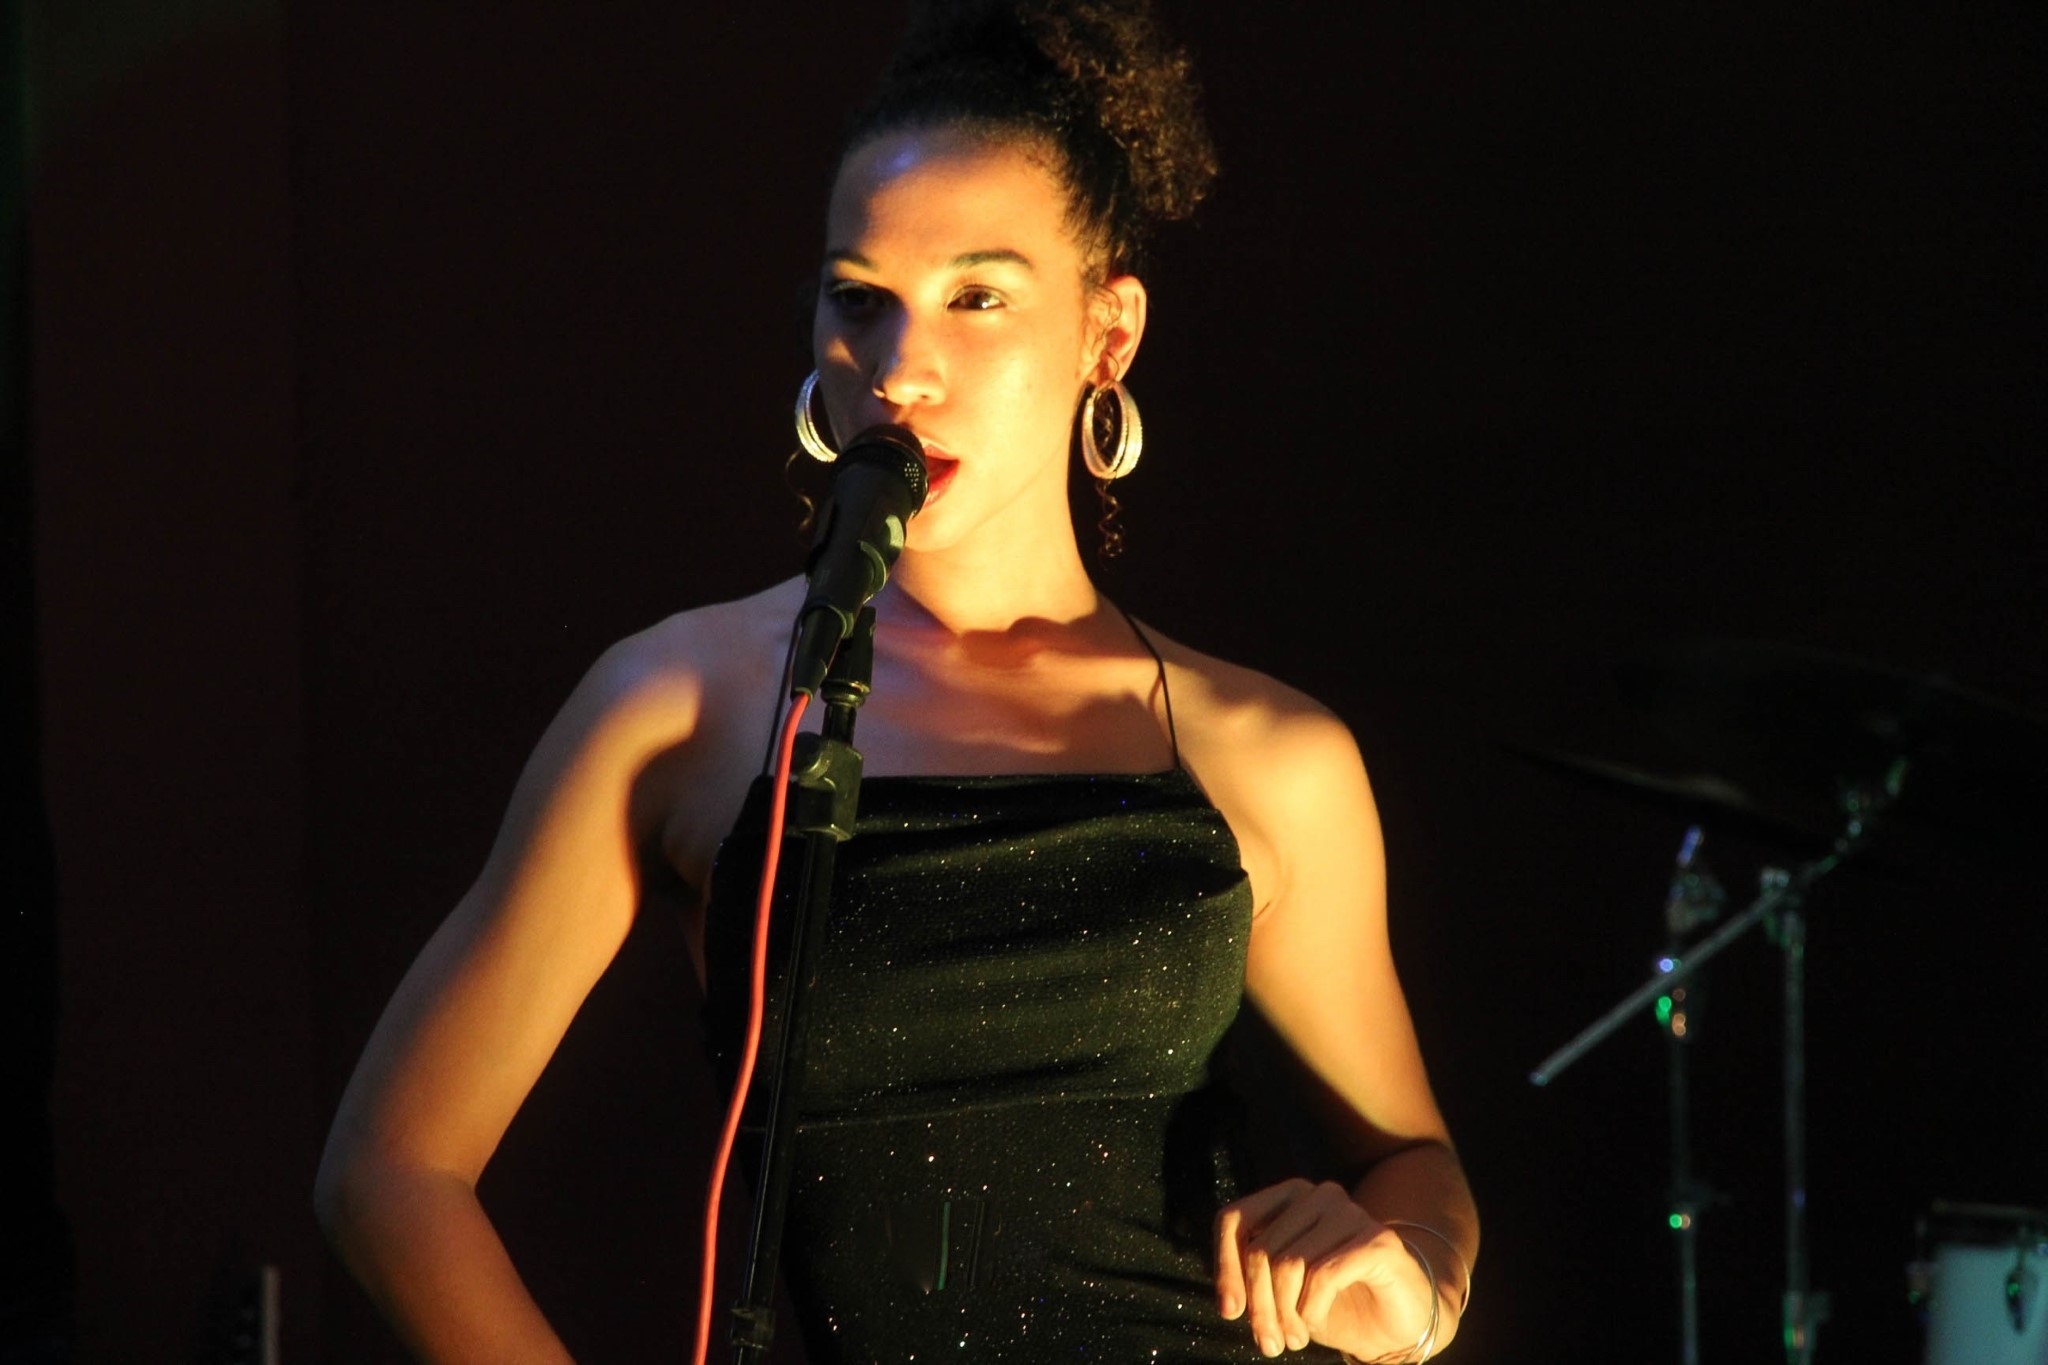 candace performing 2019